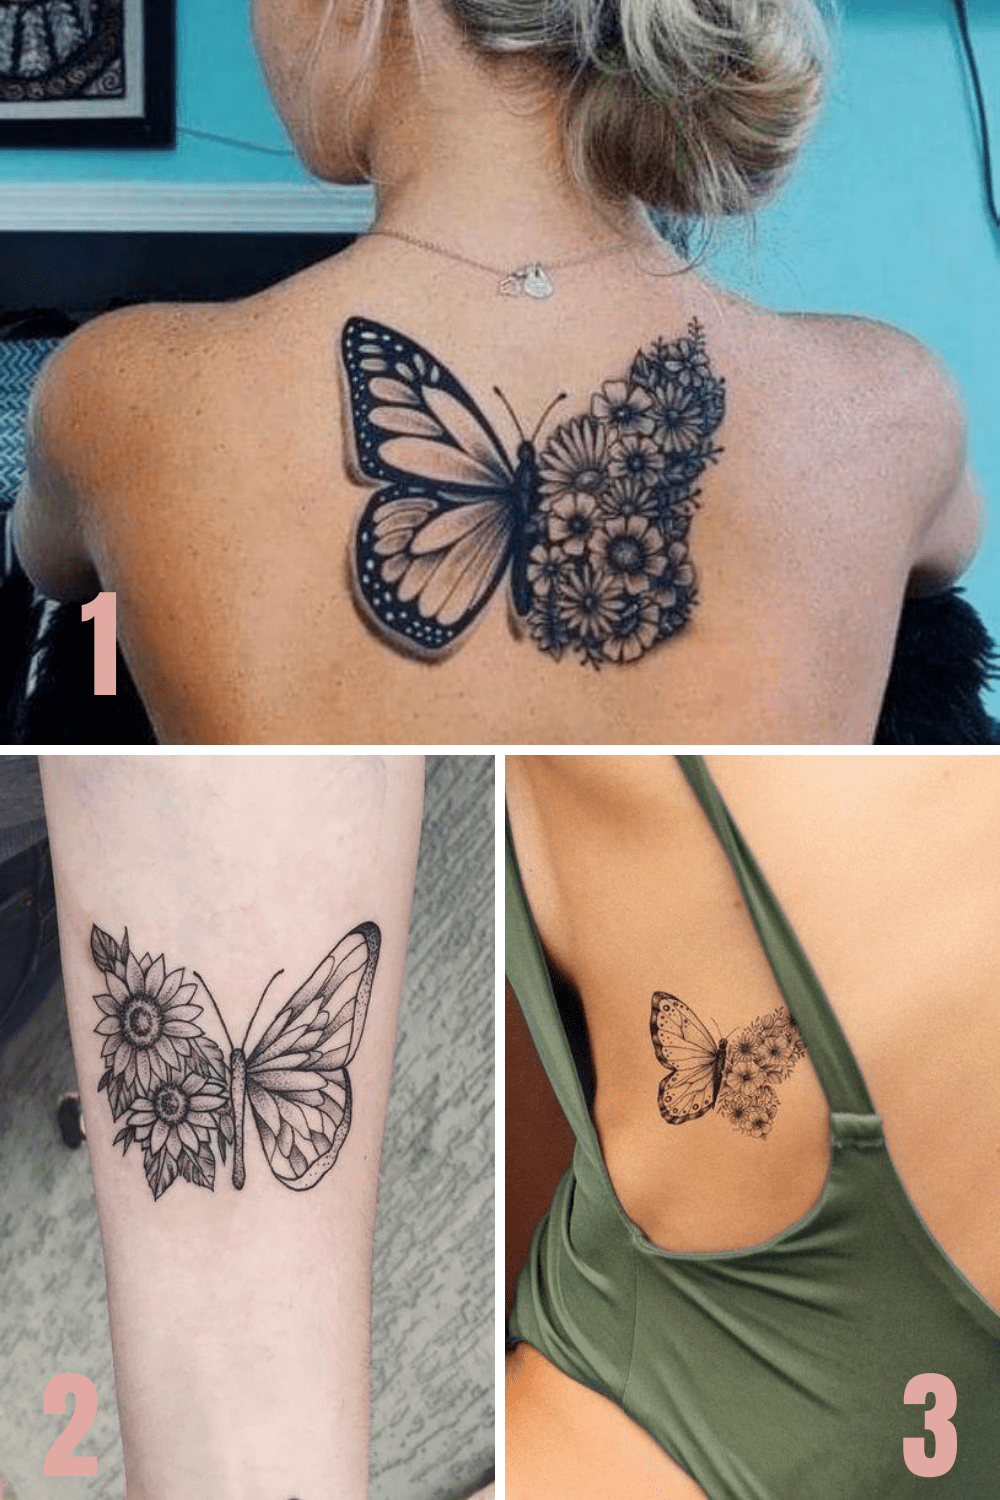 Butterfly And Flower Tattoos : butterfly, flower, tattoos, Beautiful, Butterfly, Flower, Tattoo, Ideas, TattooGlee